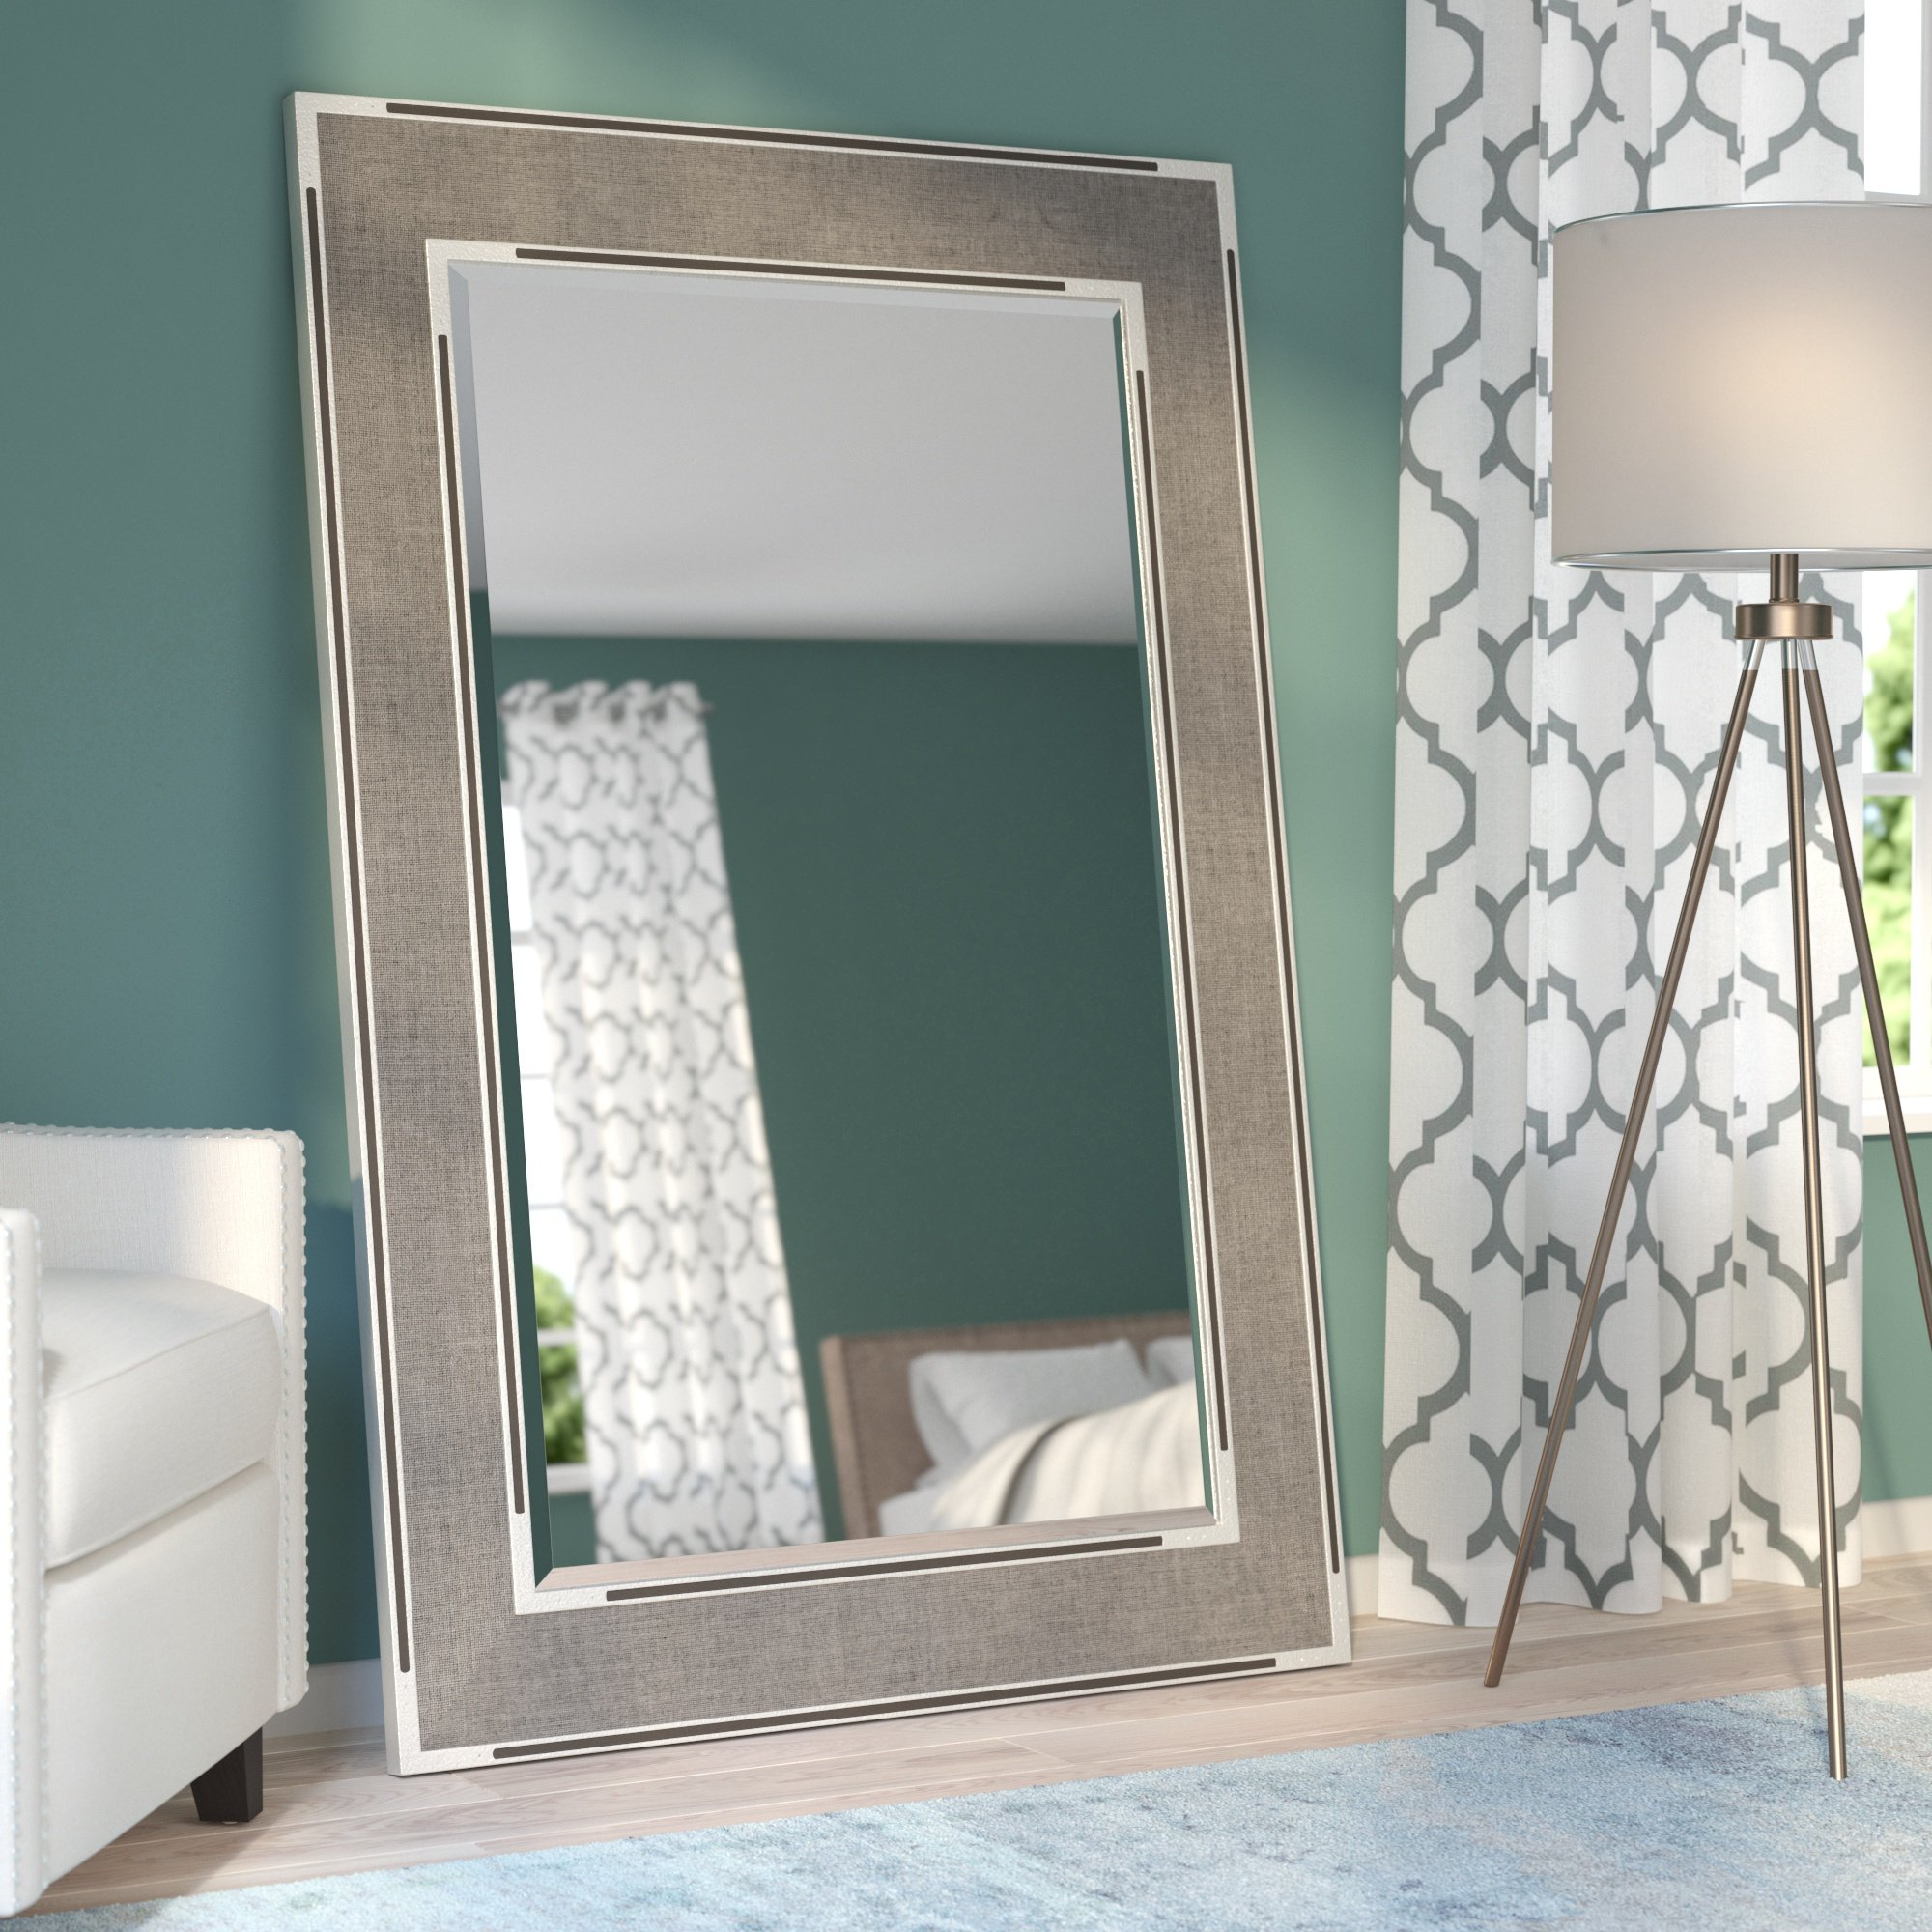 Brodbeck Oversized Wall Mirror Pertaining To Fashionable Grey Wall Mirrors (View 16 of 20)